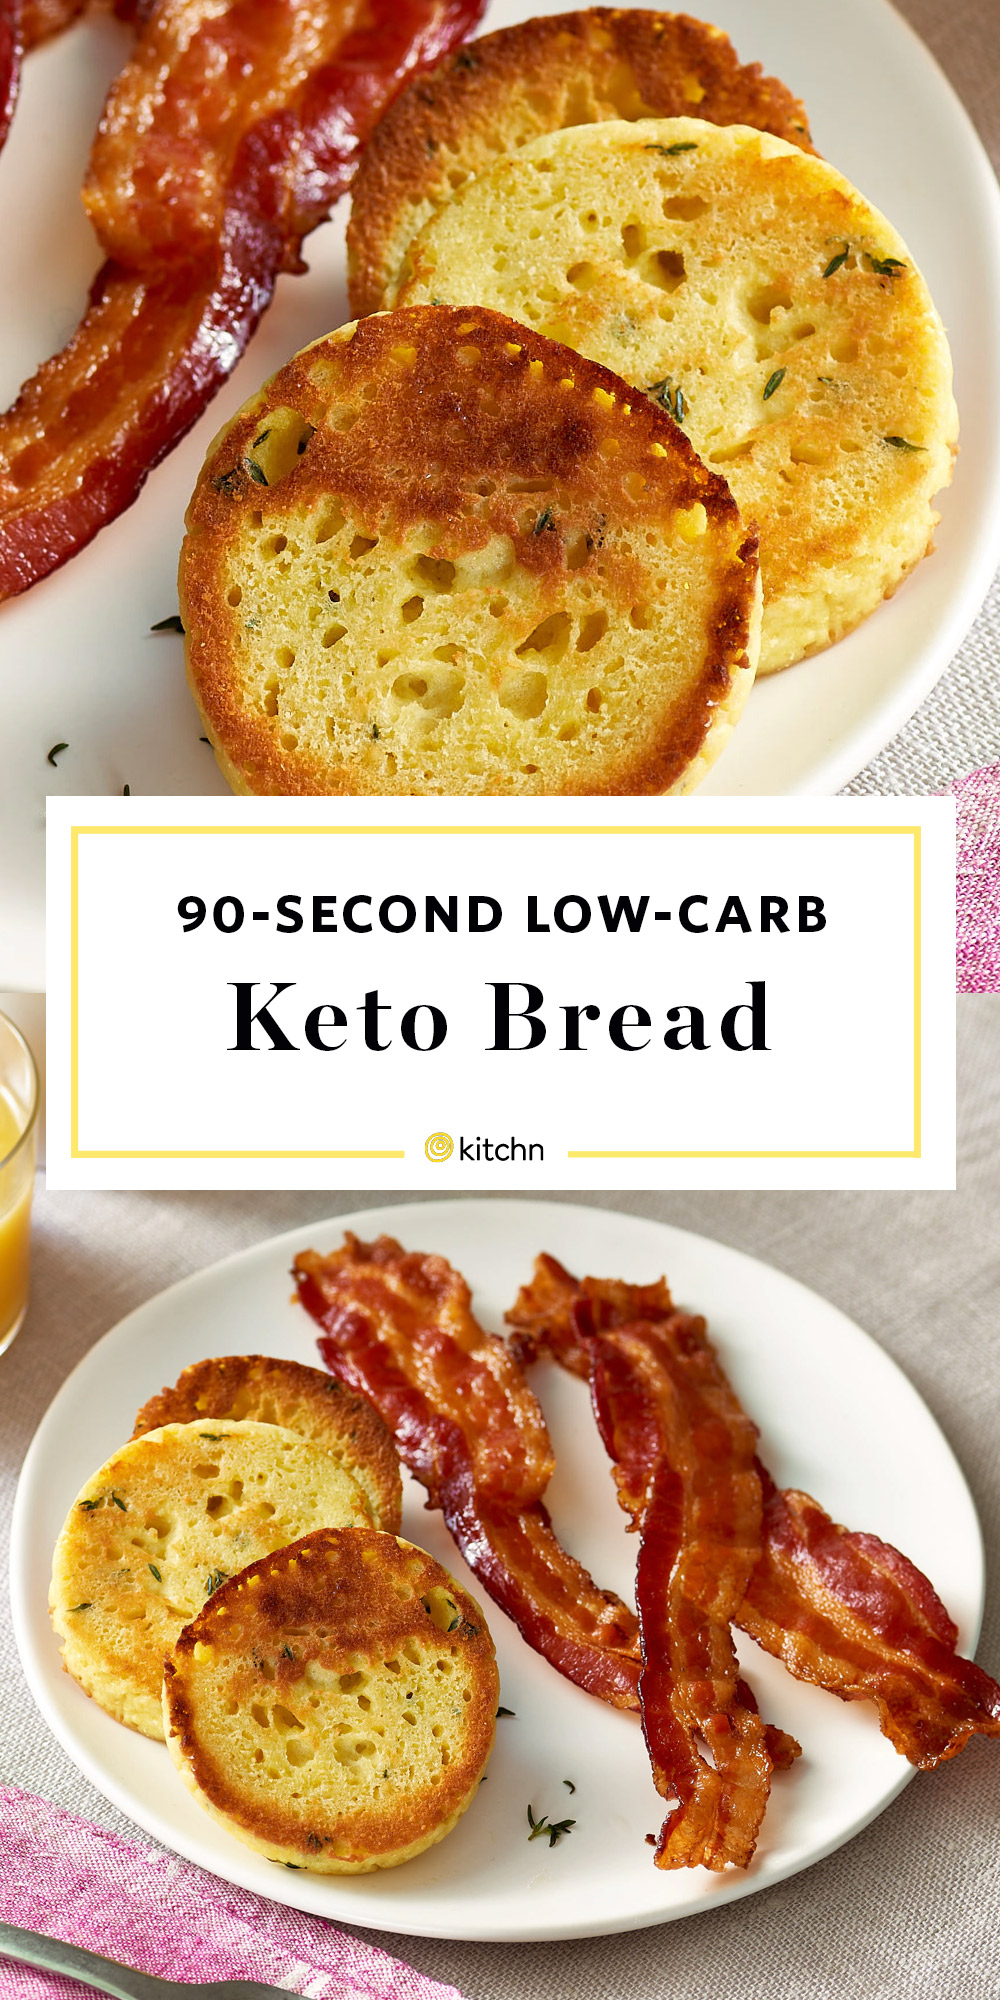 Keto Bread Recipe Review Low Carb 90 Second Bread Kitchn